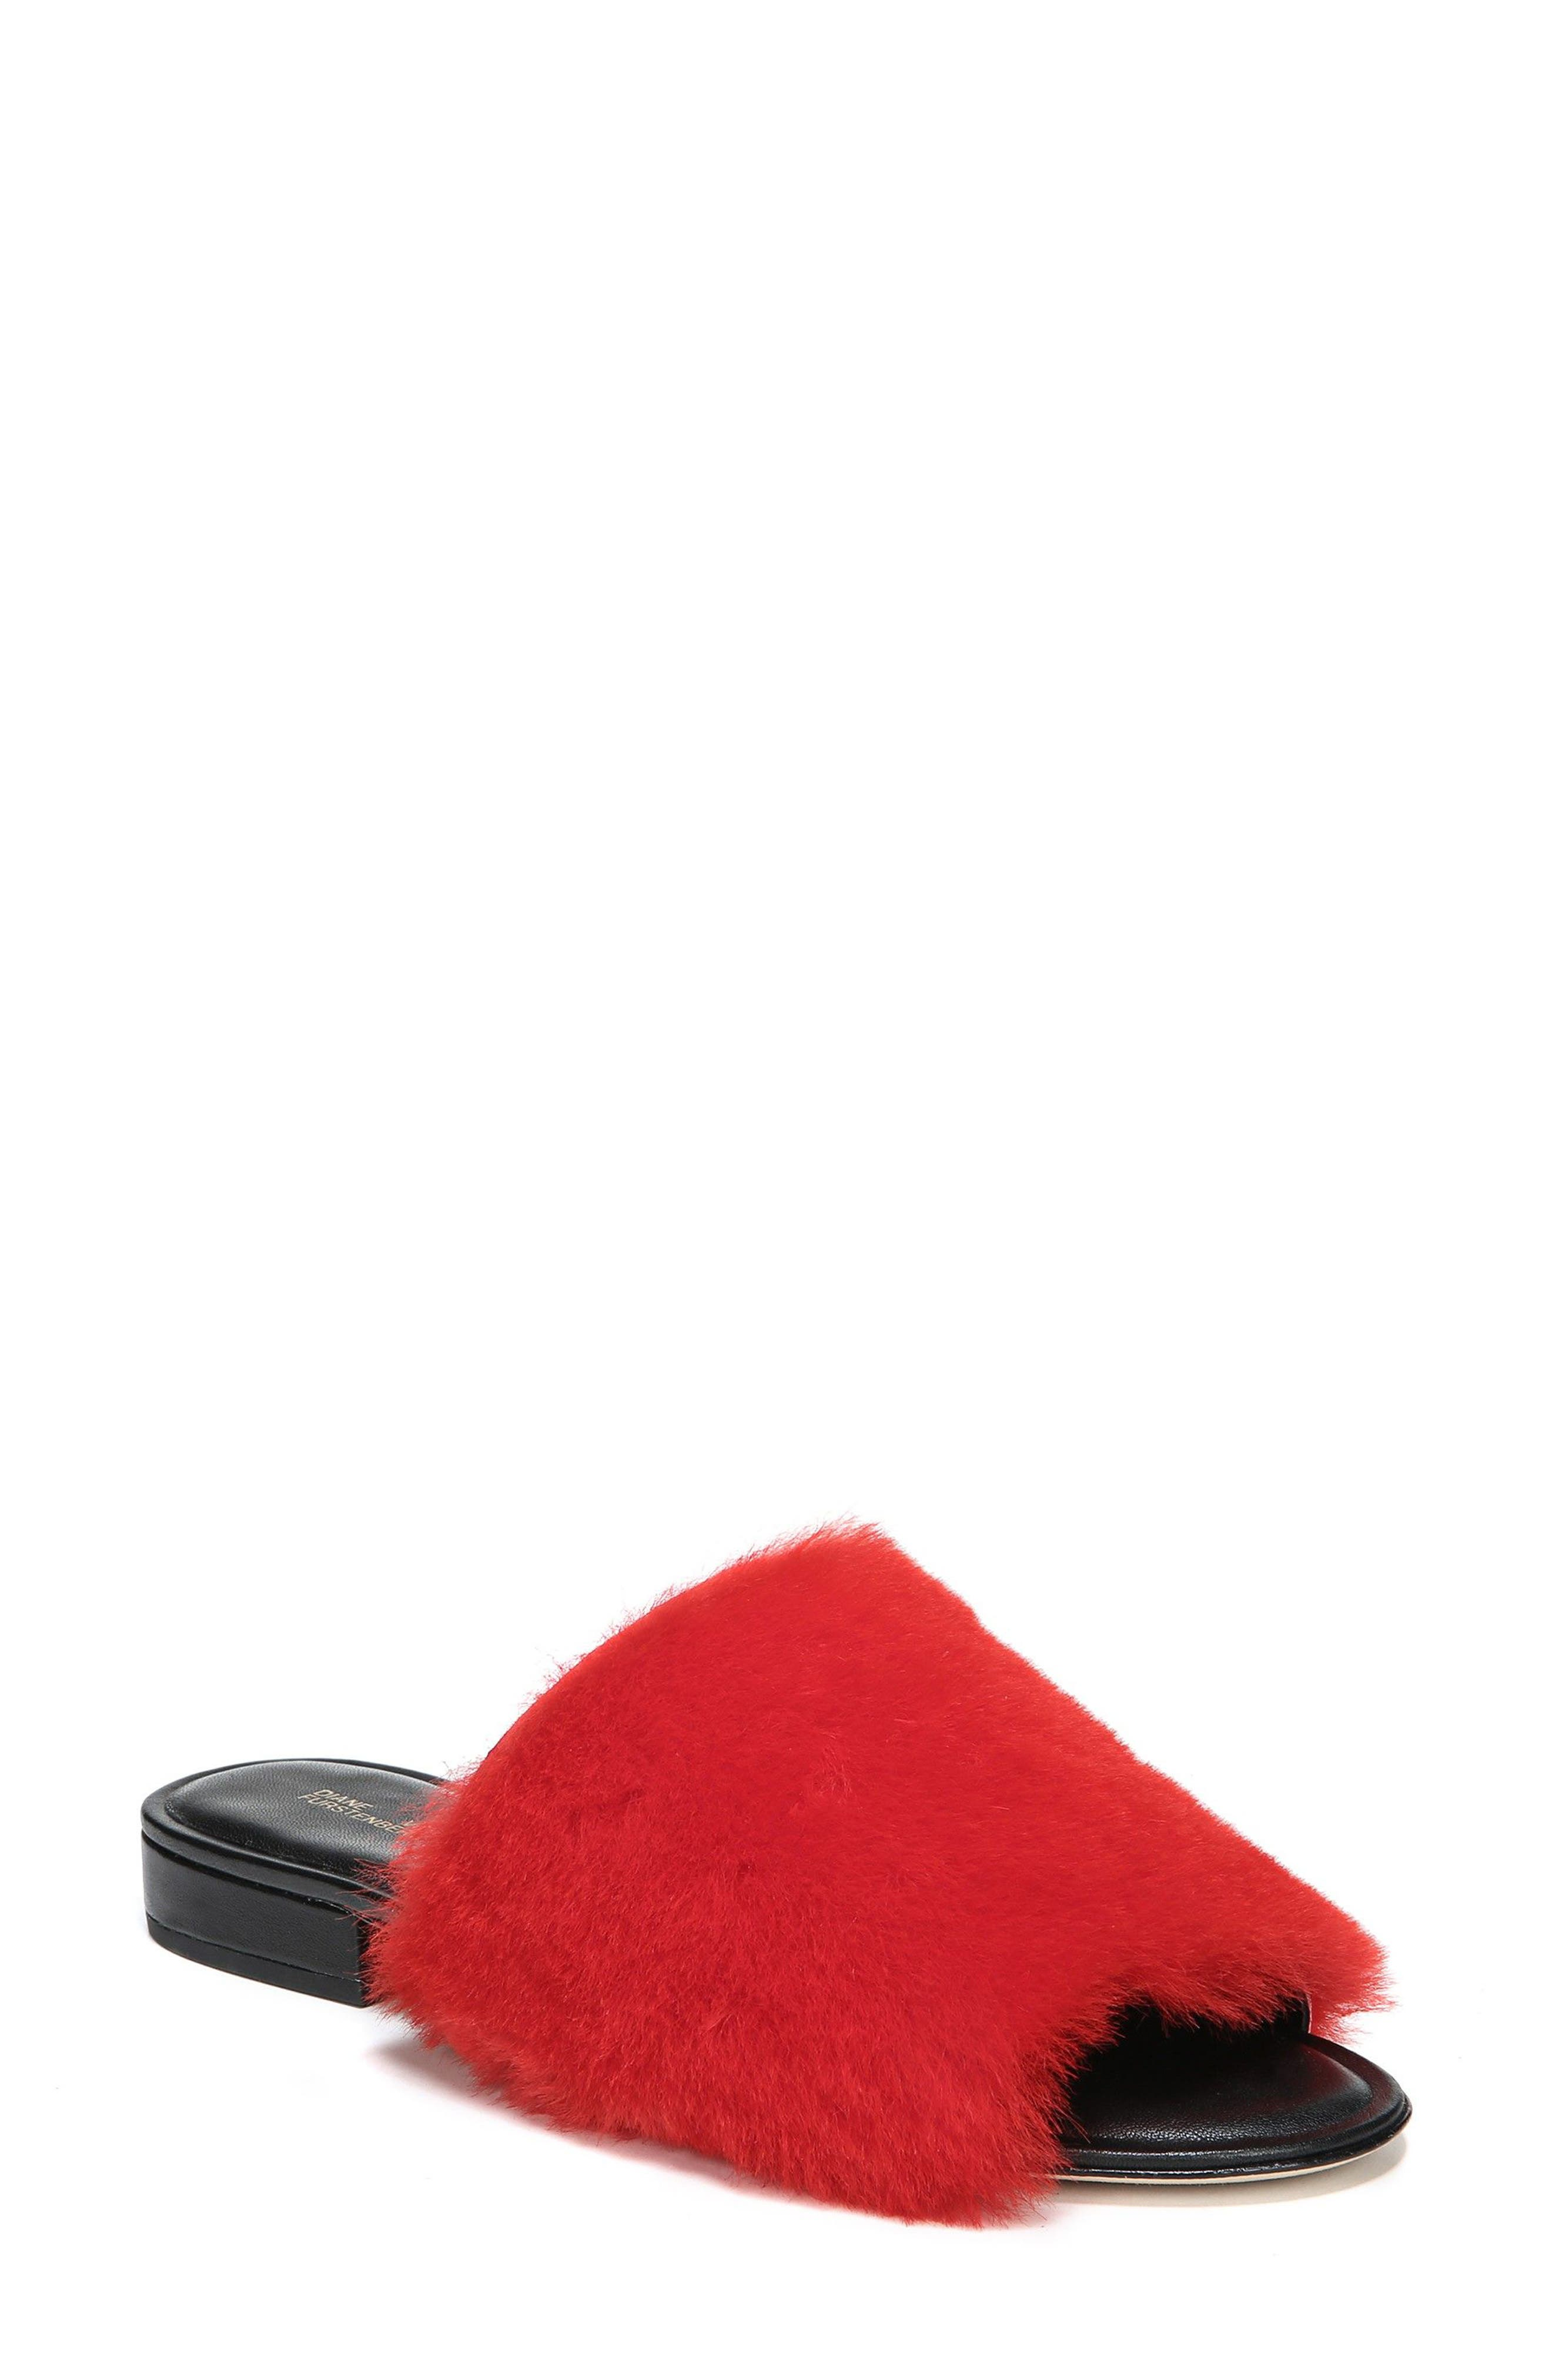 Santi Genuine Shearling Slide Sandal,                             Main thumbnail 1, color,                             Red